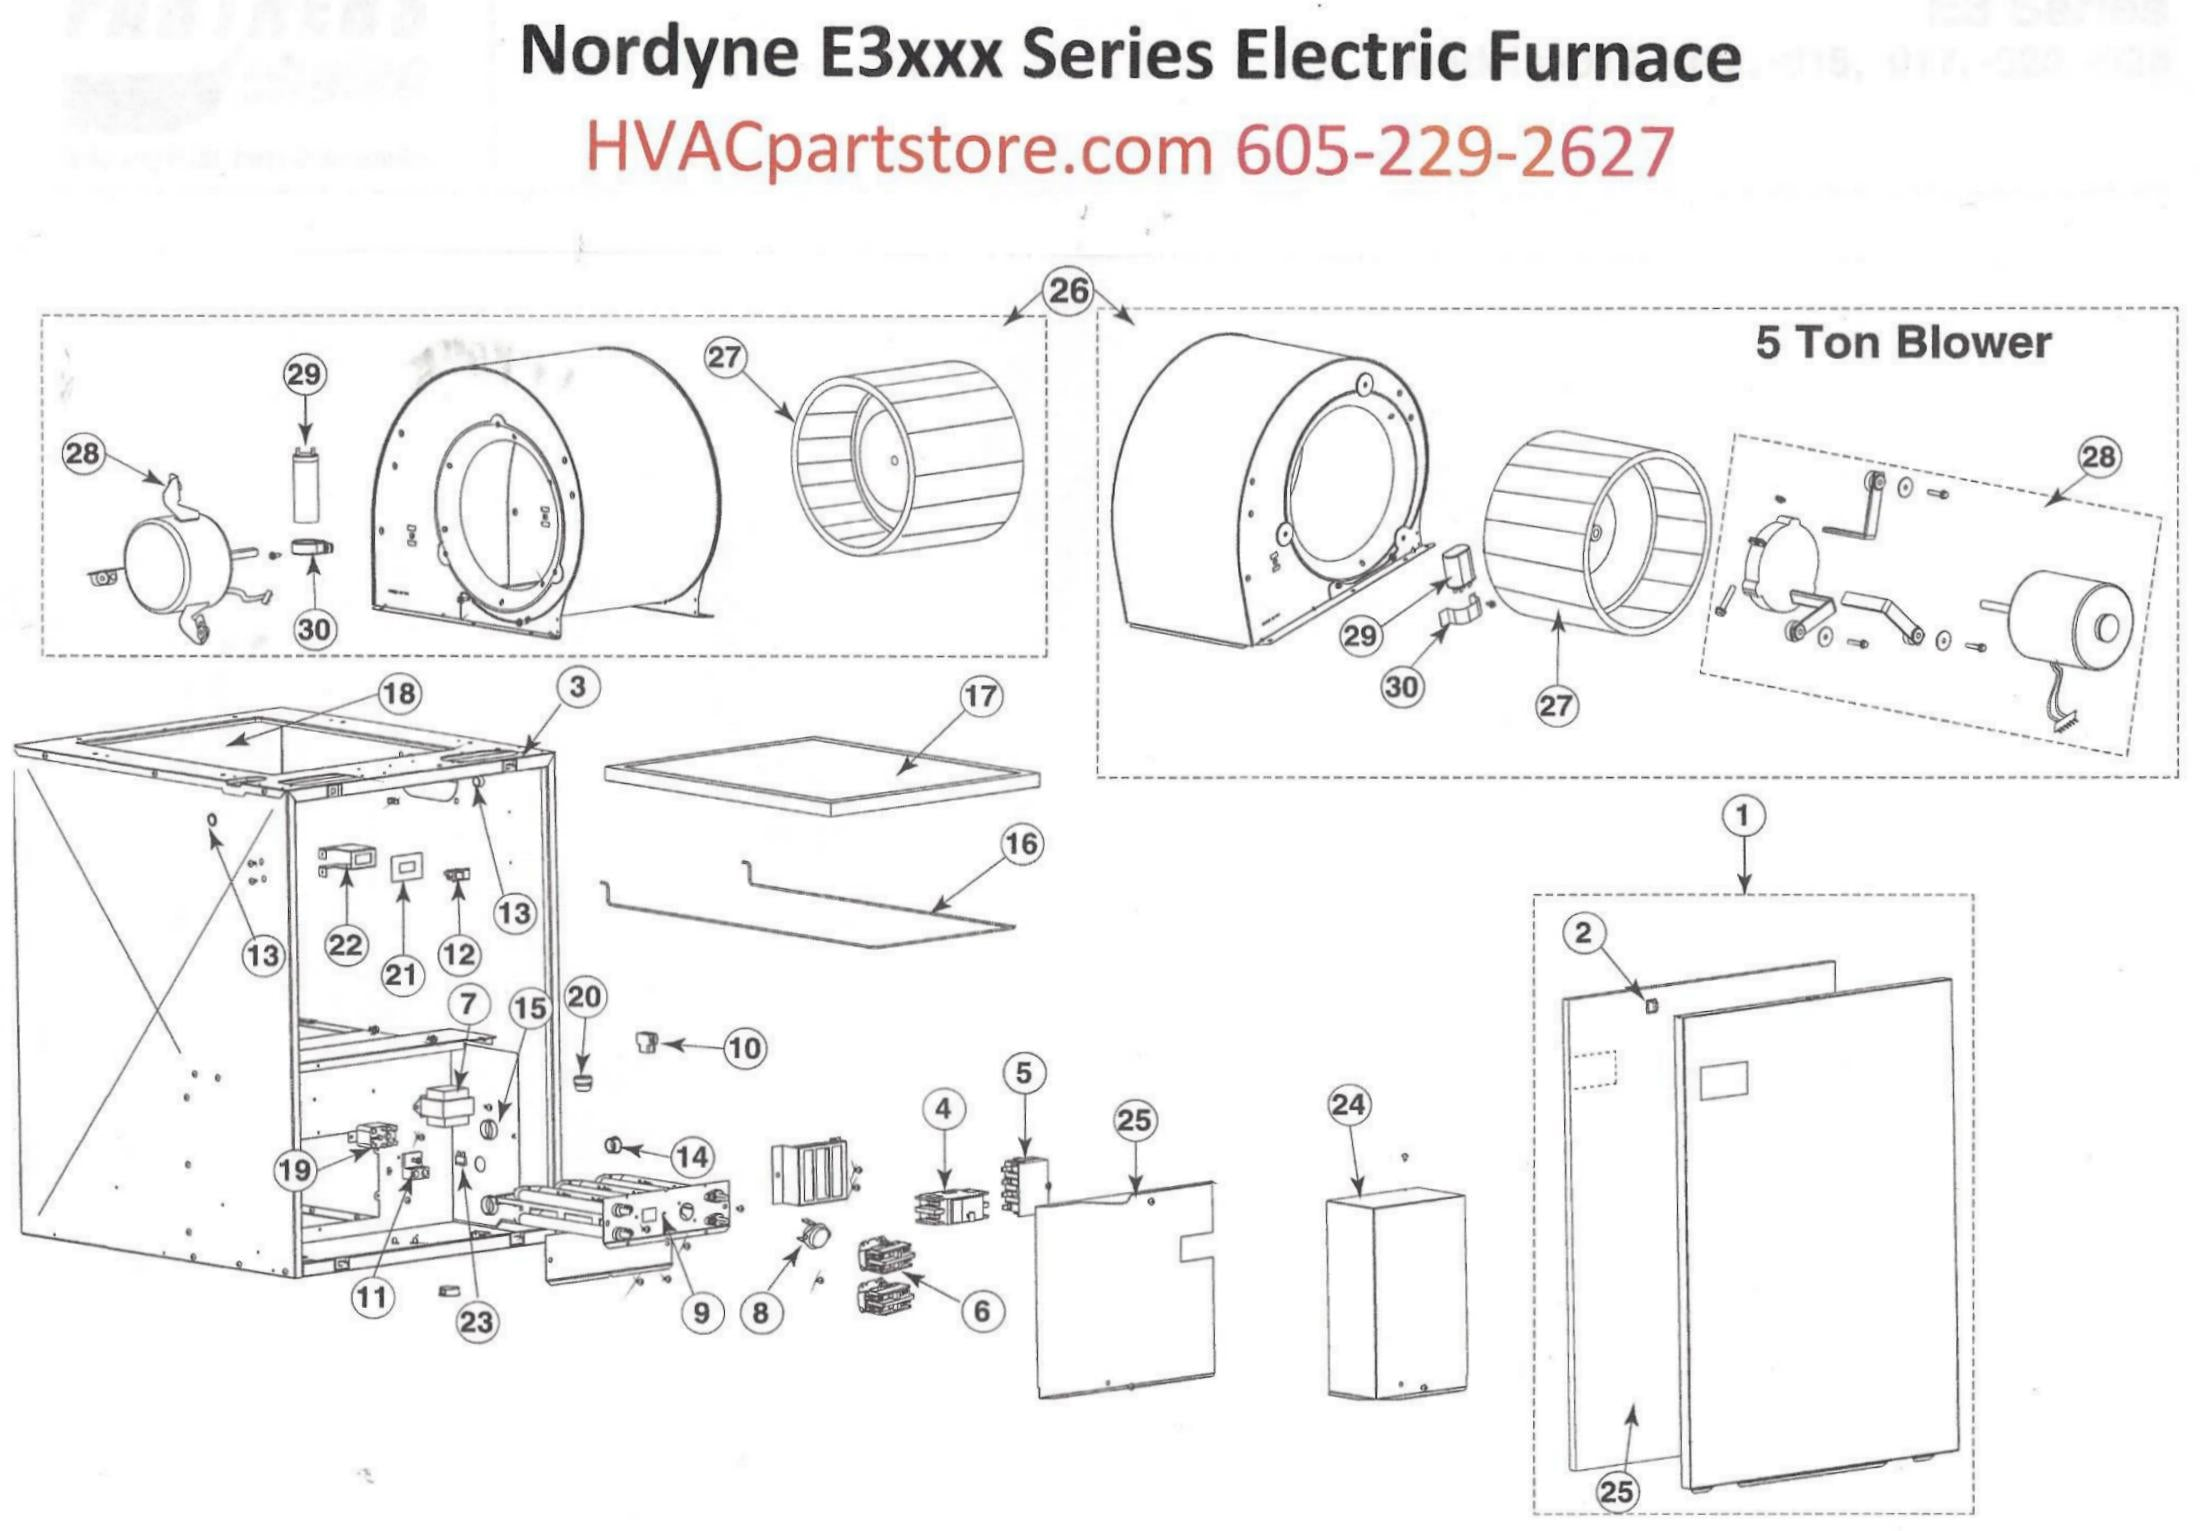 e3015 nordyne electric furnace parts hvacpartstore click here for diagrams and parts listing